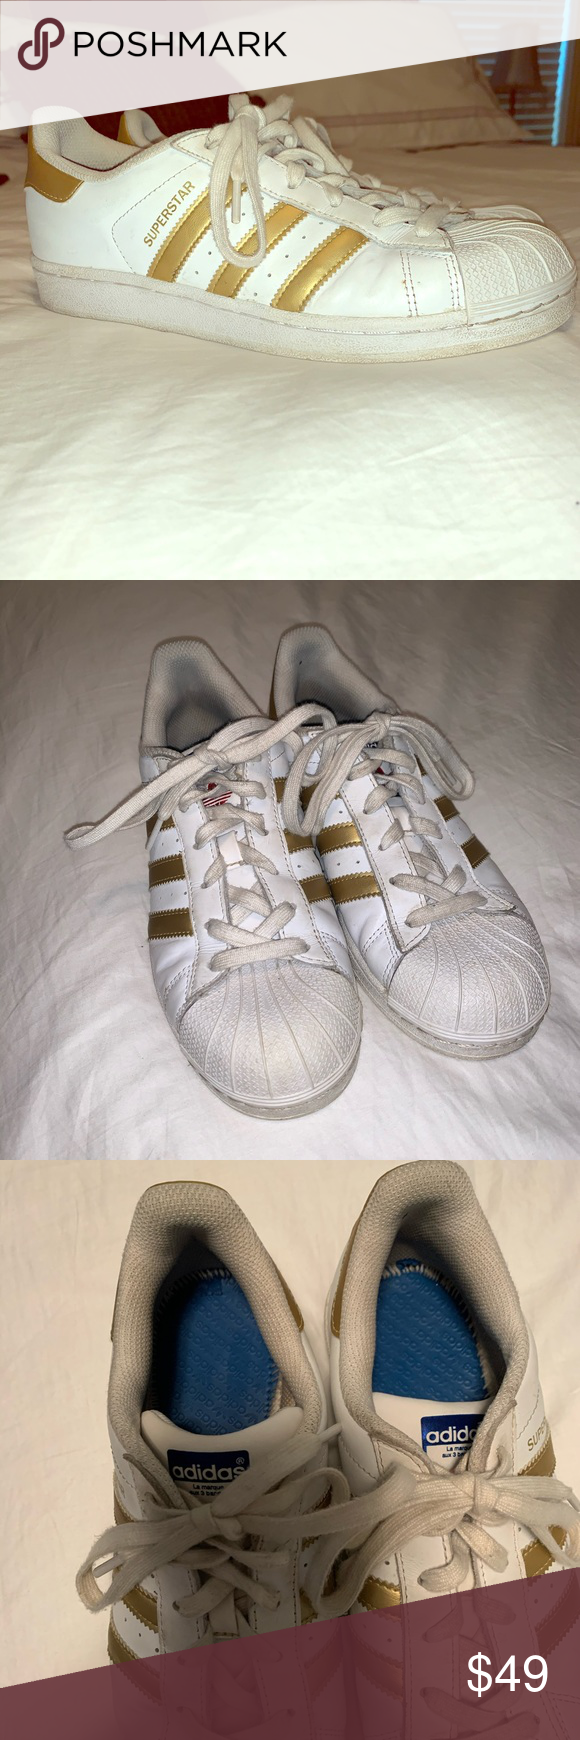 Shopping - adidas superstar insole